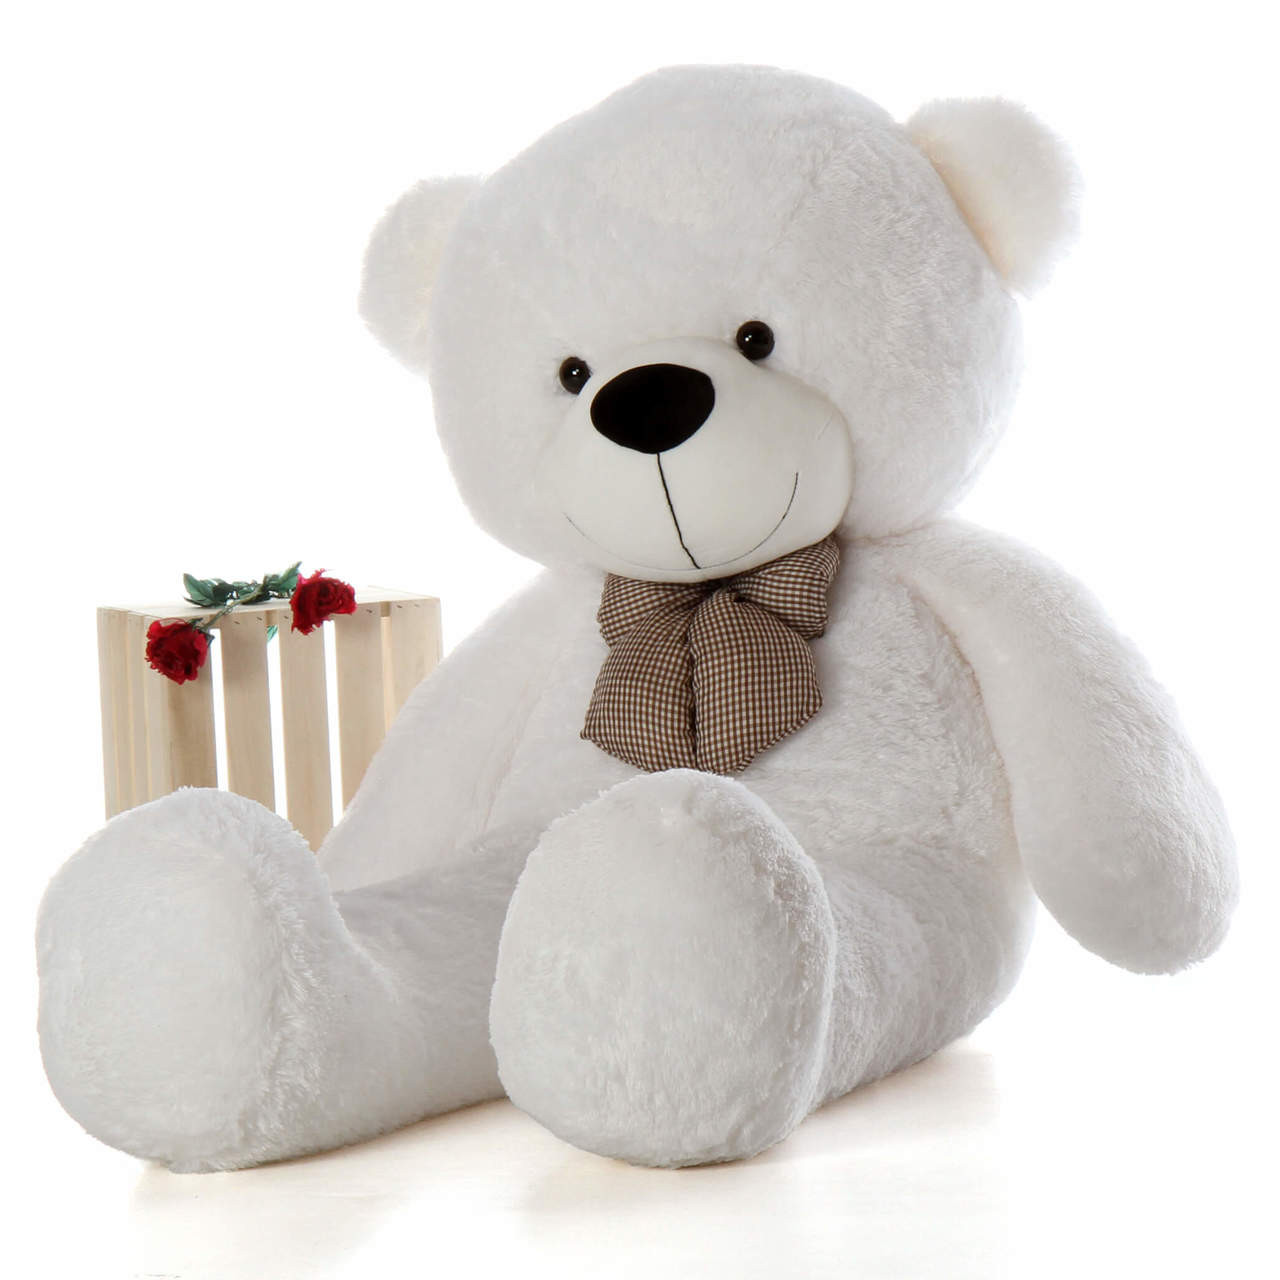 6ft  Best Selling Life Size Teddy Bear Coco Cuddles giant white teddy bear